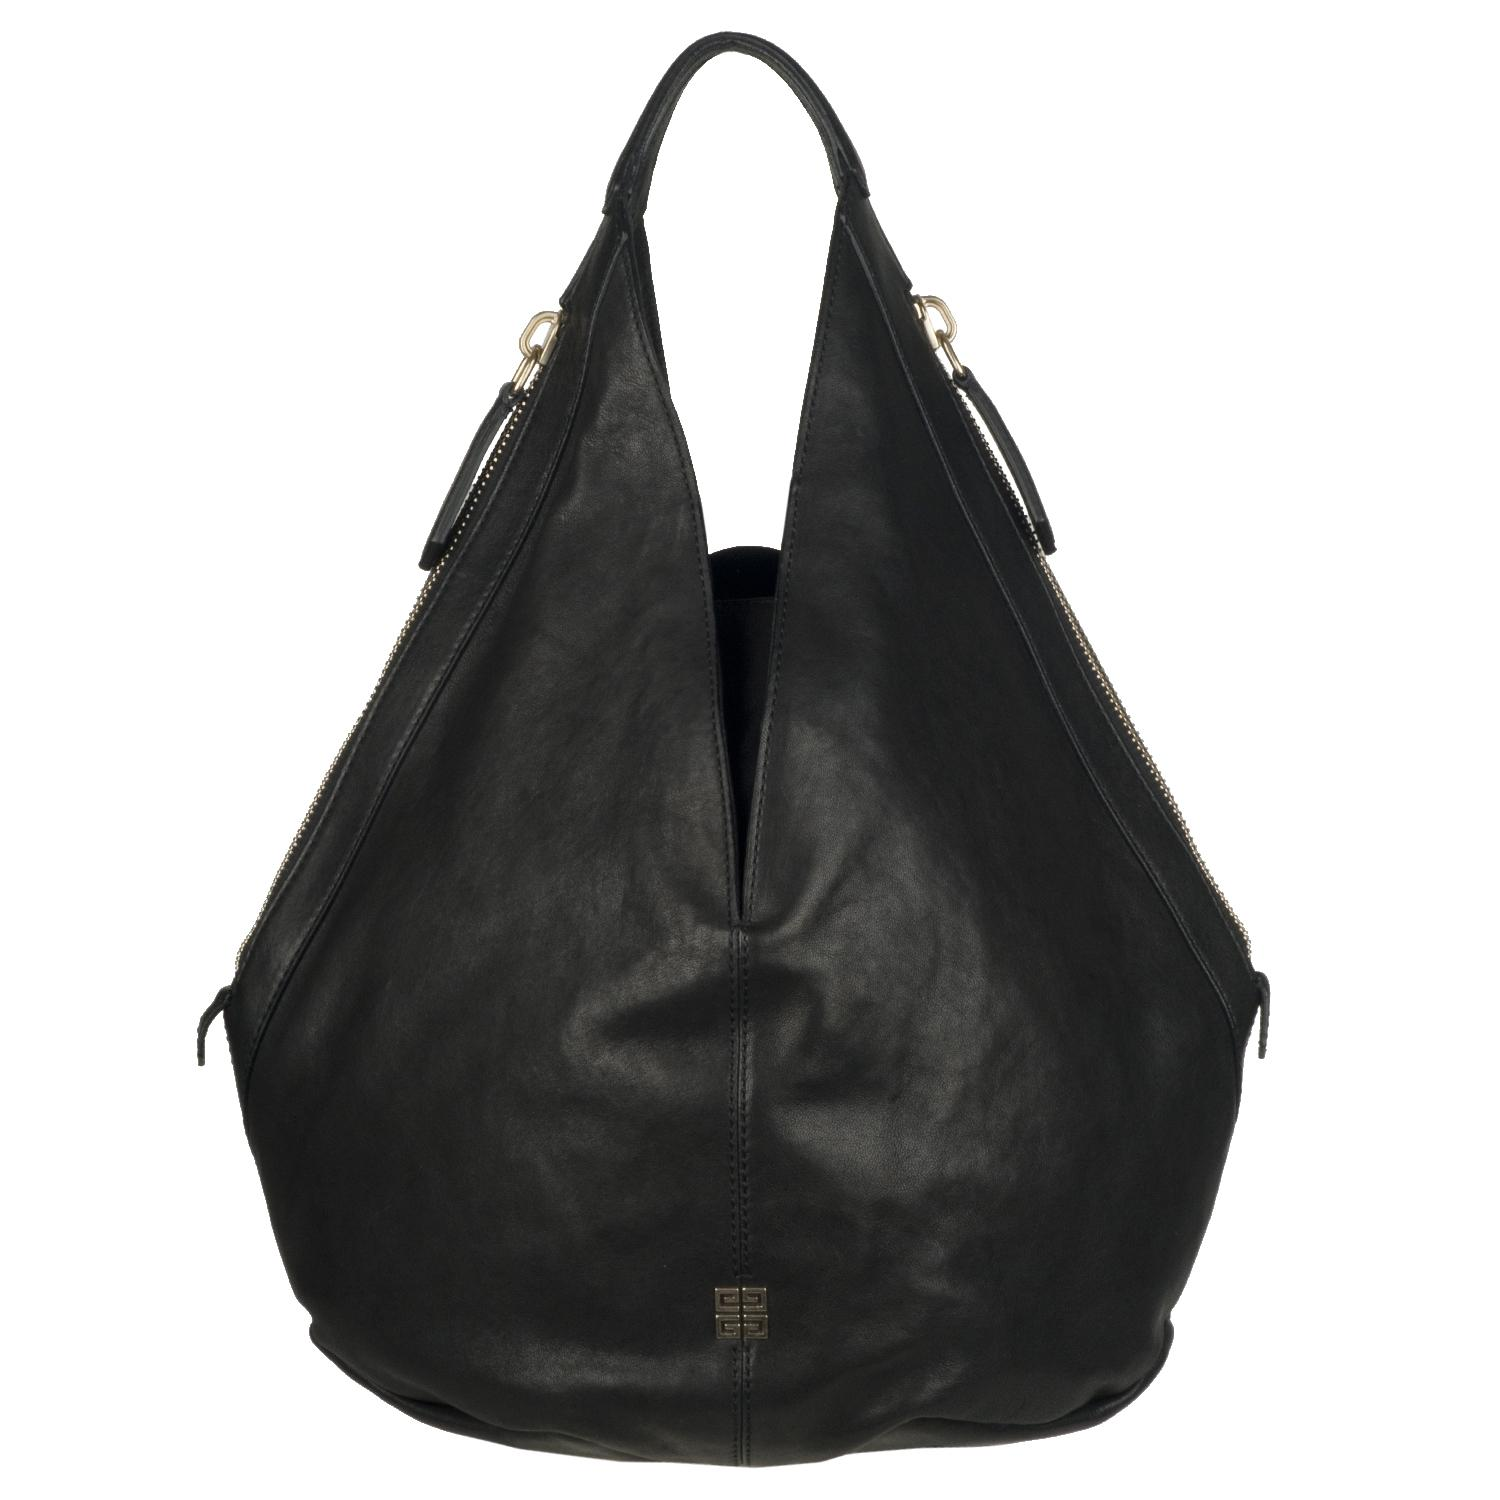 Givenchy Tinhan Black Leather Hobo Bag Free Shipping